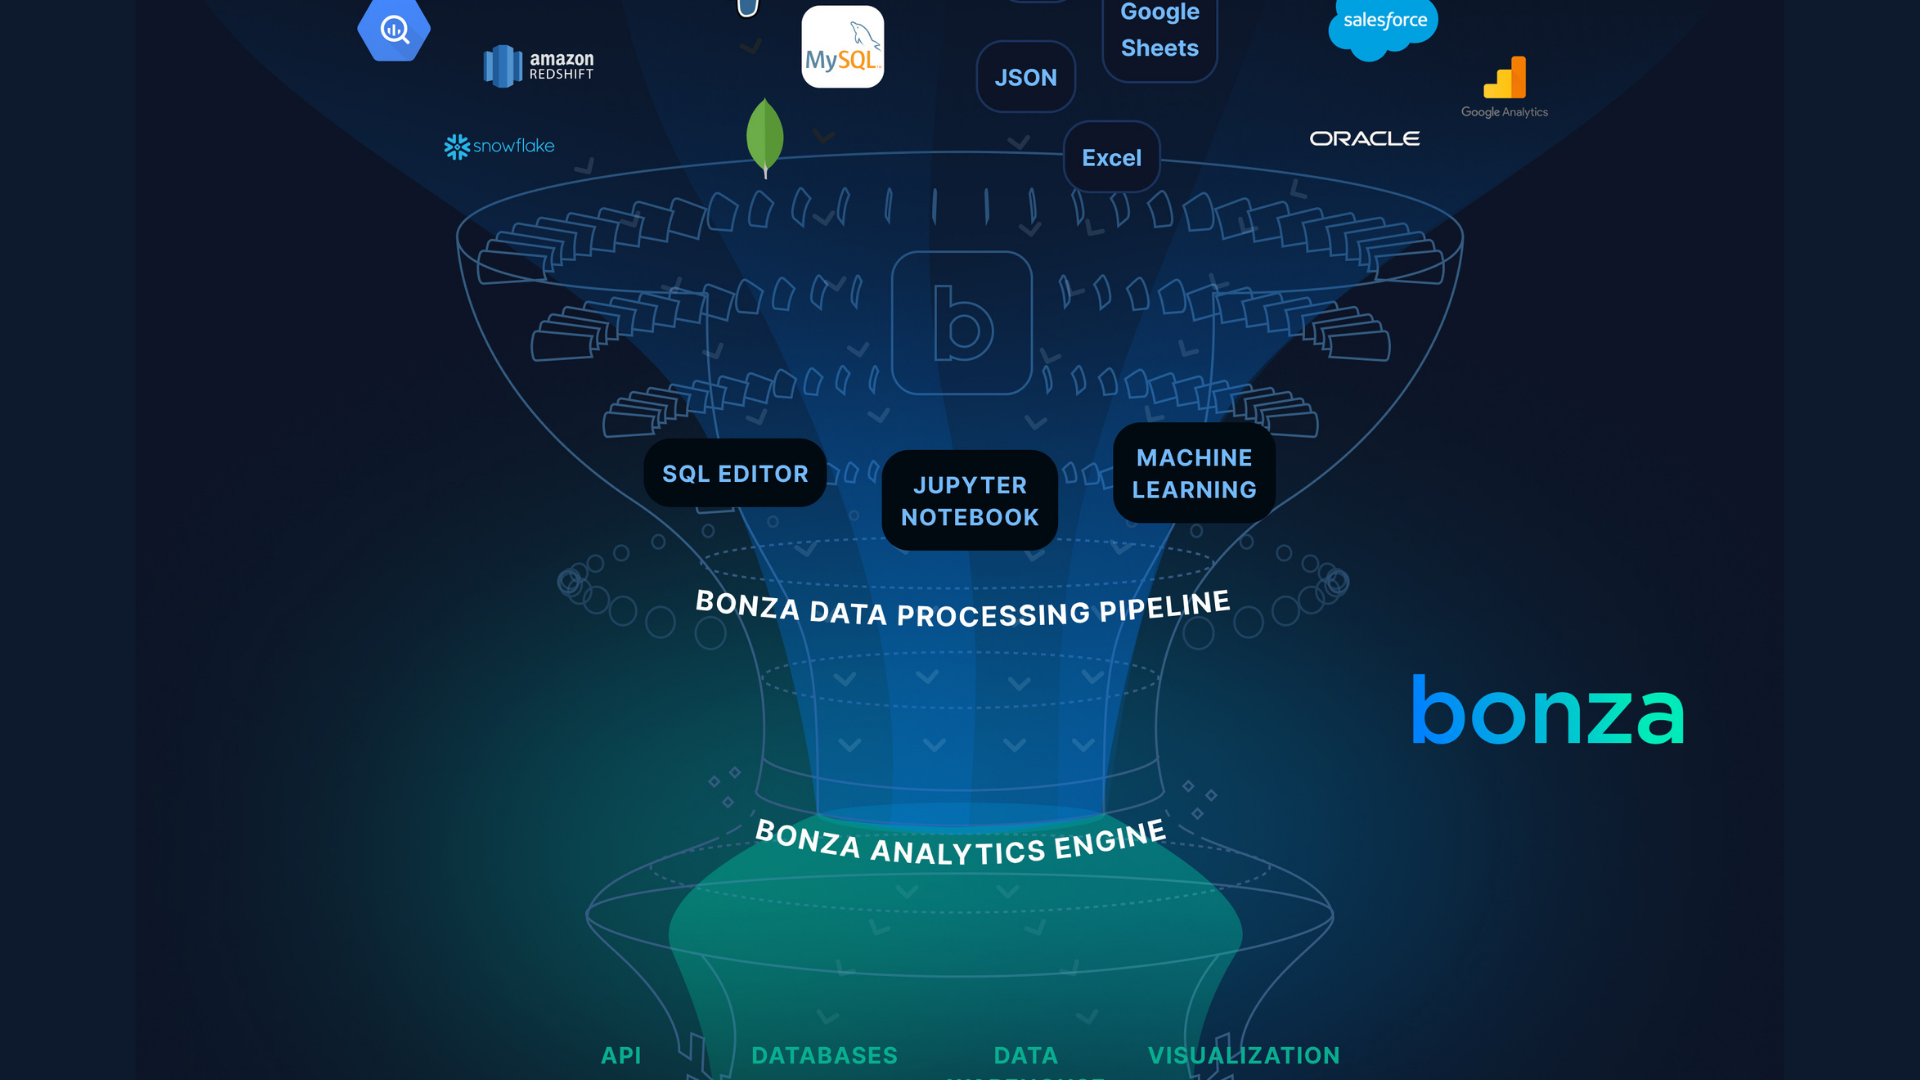 East Ventures leads Bonza US$2m new round to accelerate go-to-market of AI no-code platform